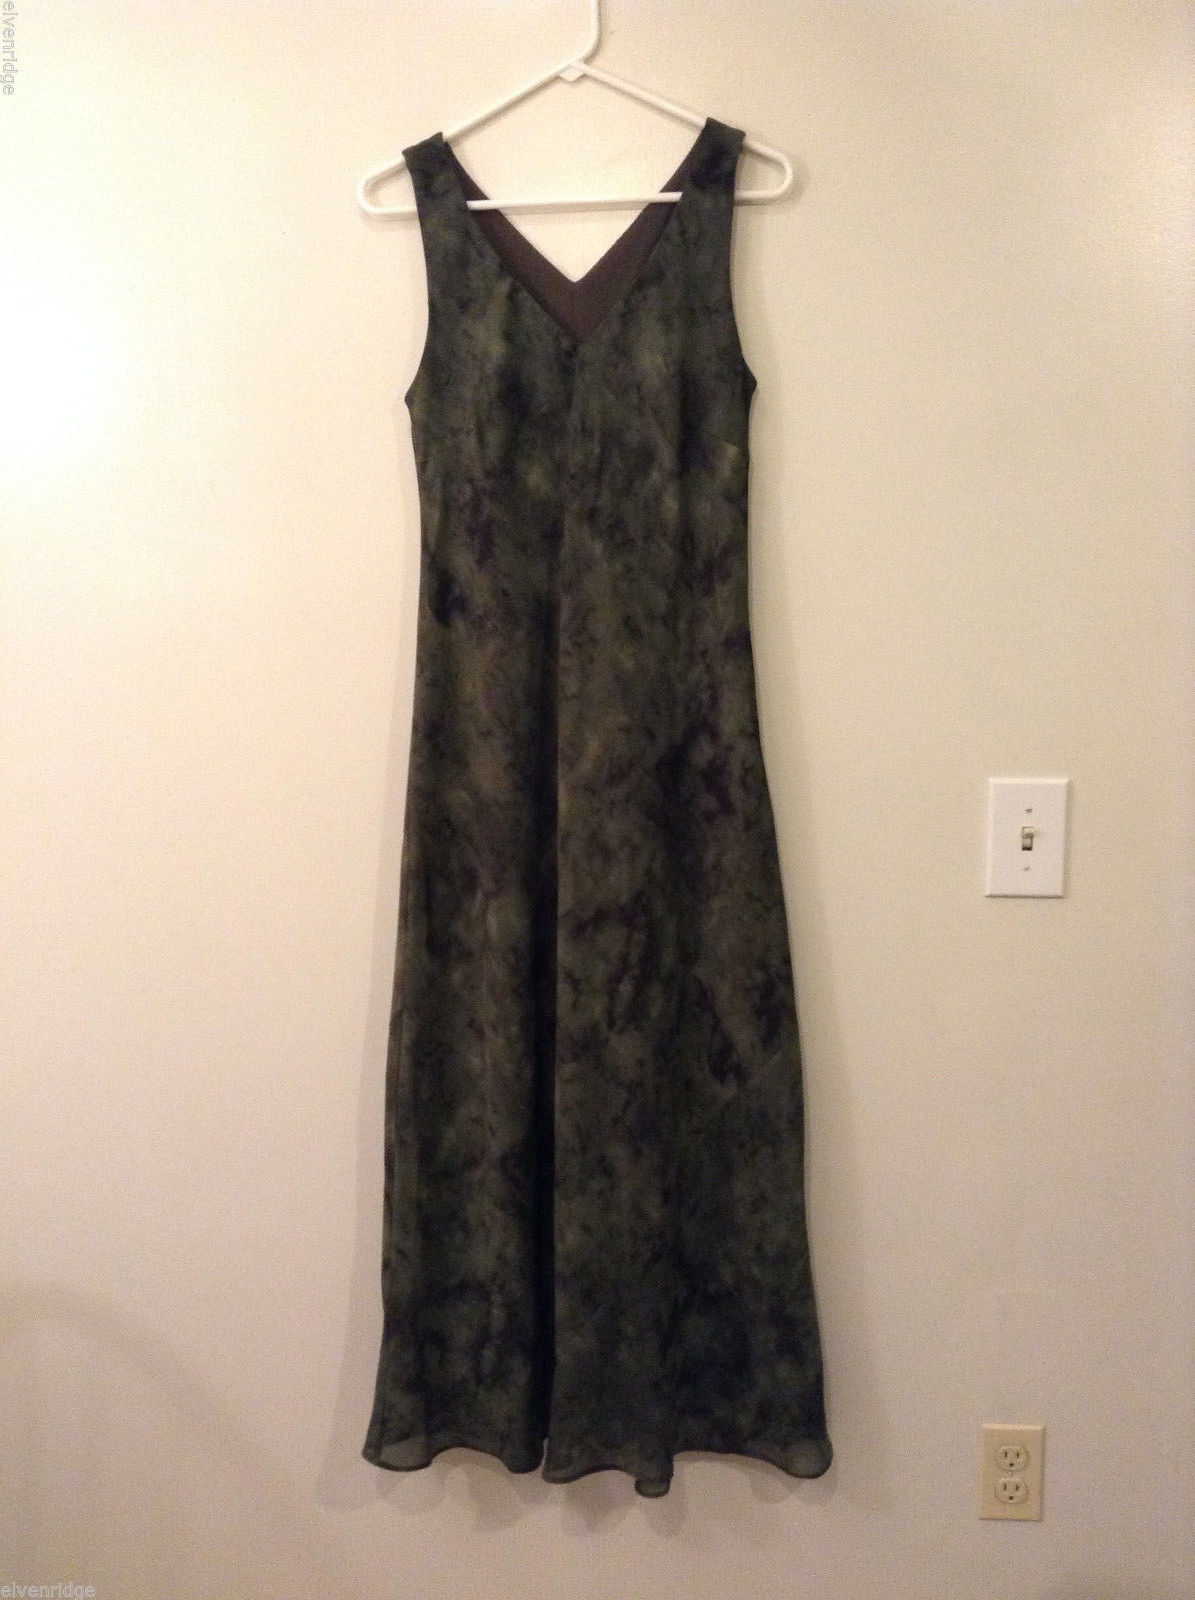 Rabbit Designs Olive Green Camouflage Sleeveless V-Neck Dress, size 10